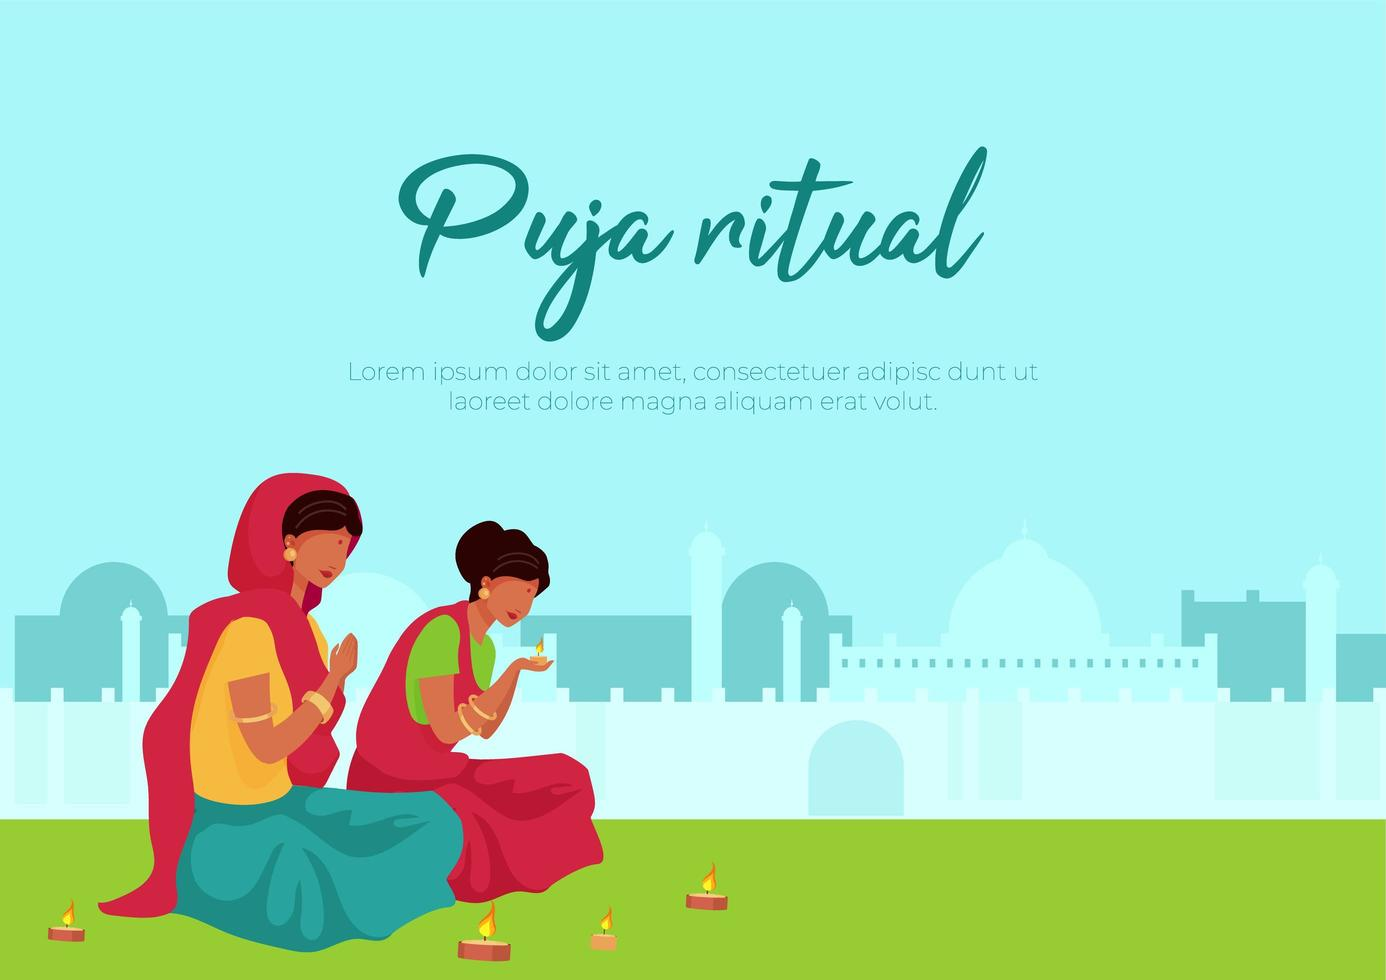 puja rituele poster vector